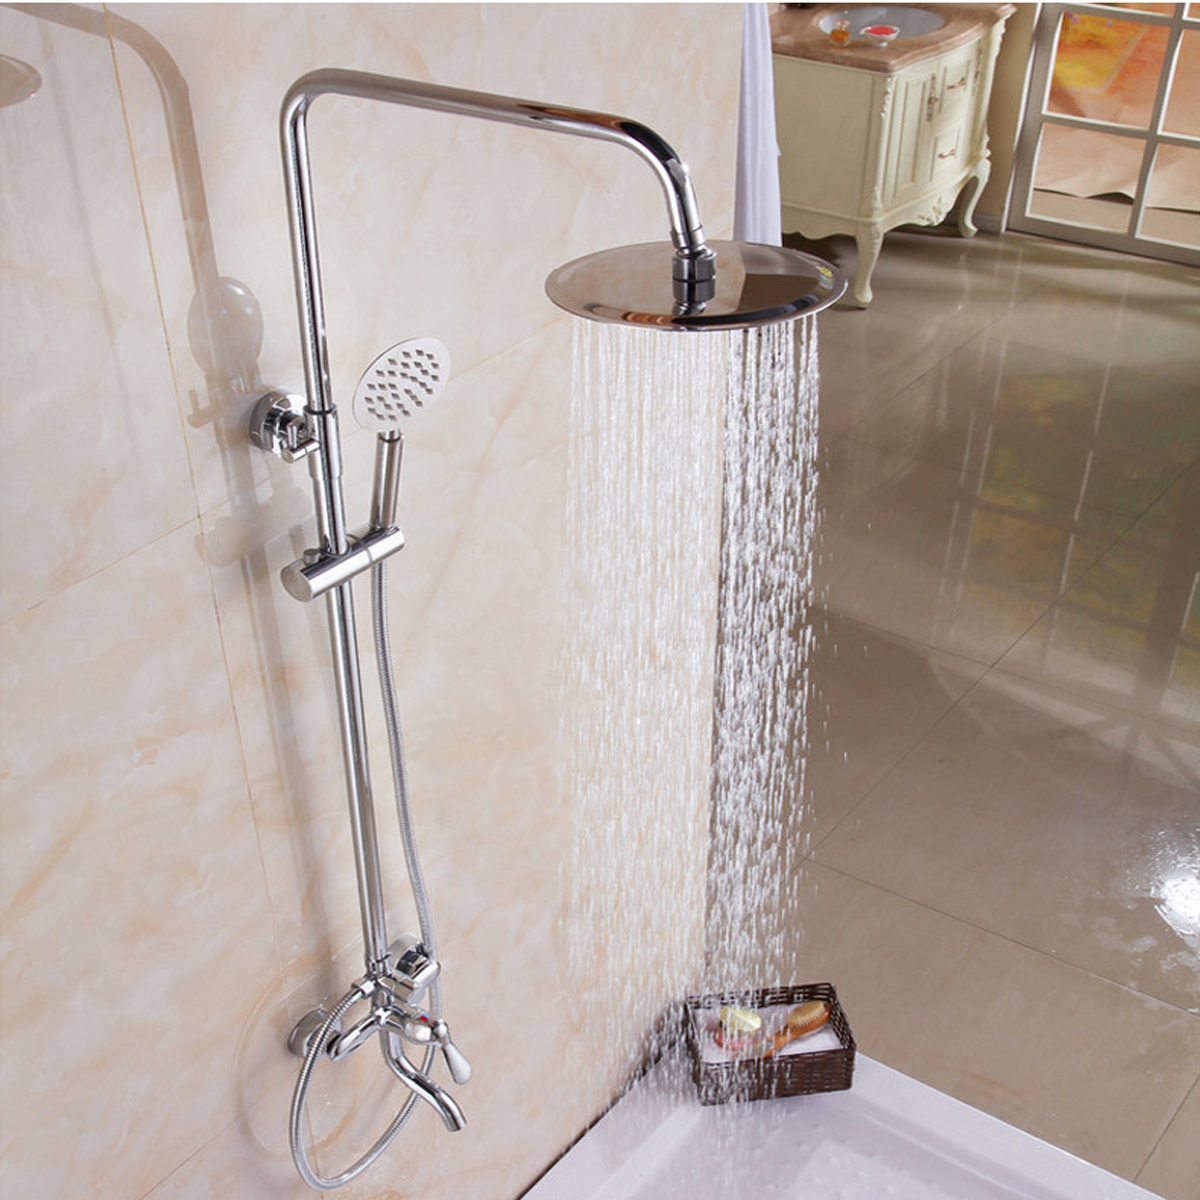 Us 75 84 21 Off 8 Chrome Brass Polished Rainfall Shower Head Faucet Set Shower Tub Mixer Tap Saving Nozzle Aerator High Pressure Wall Mounted In